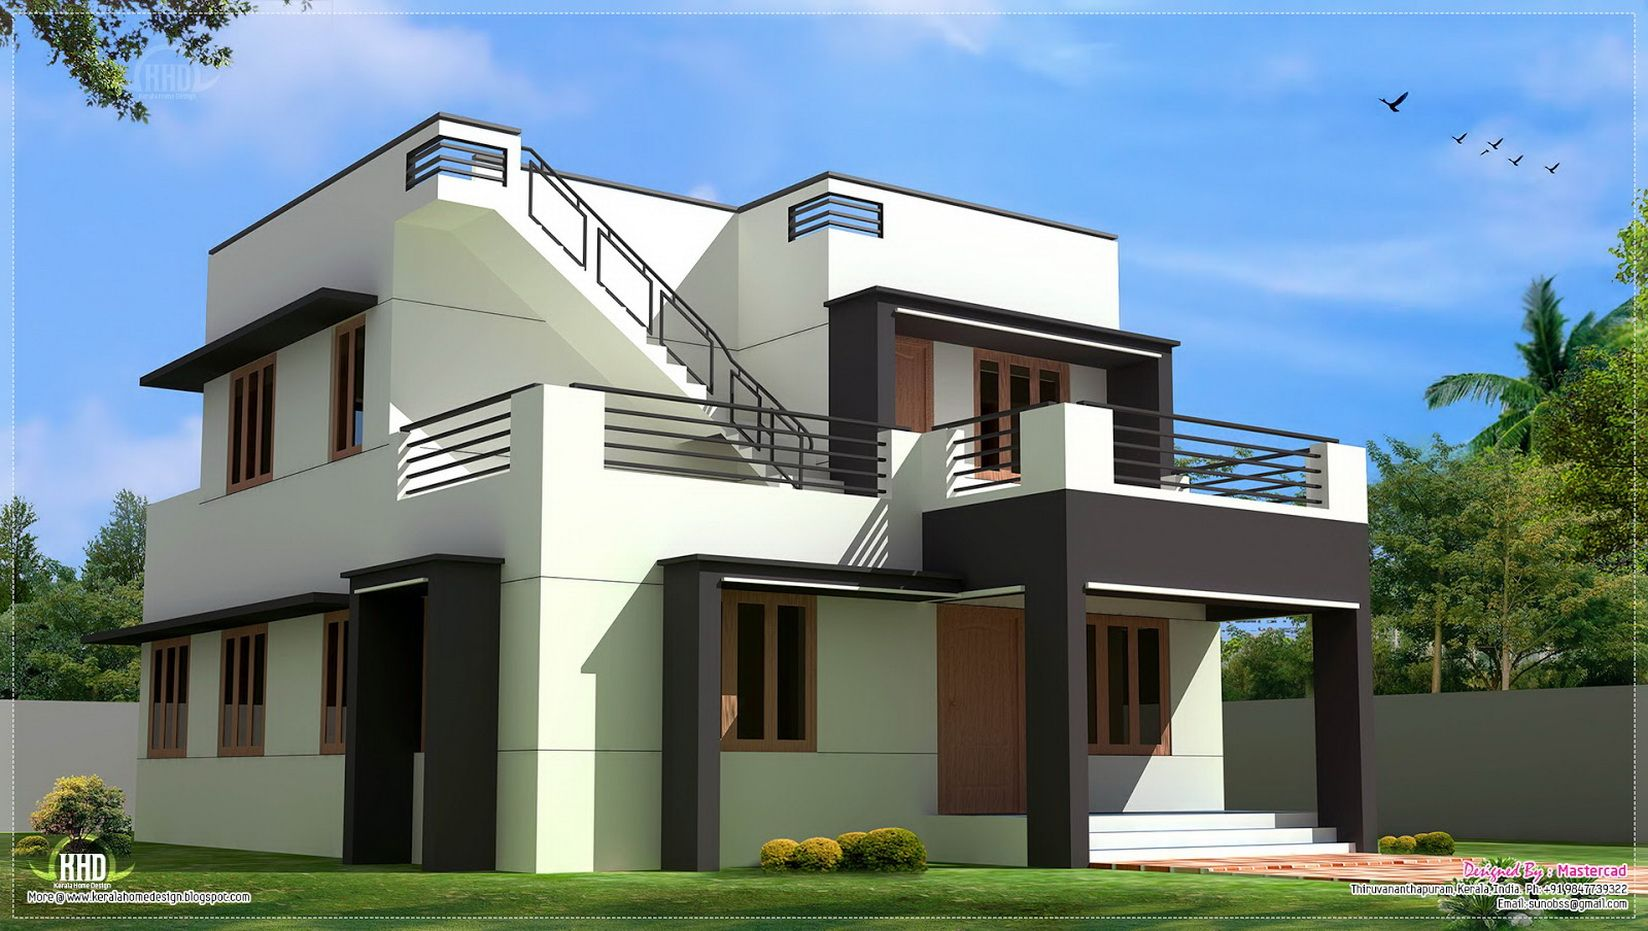 Best Modern House Design looking for the best modern home design